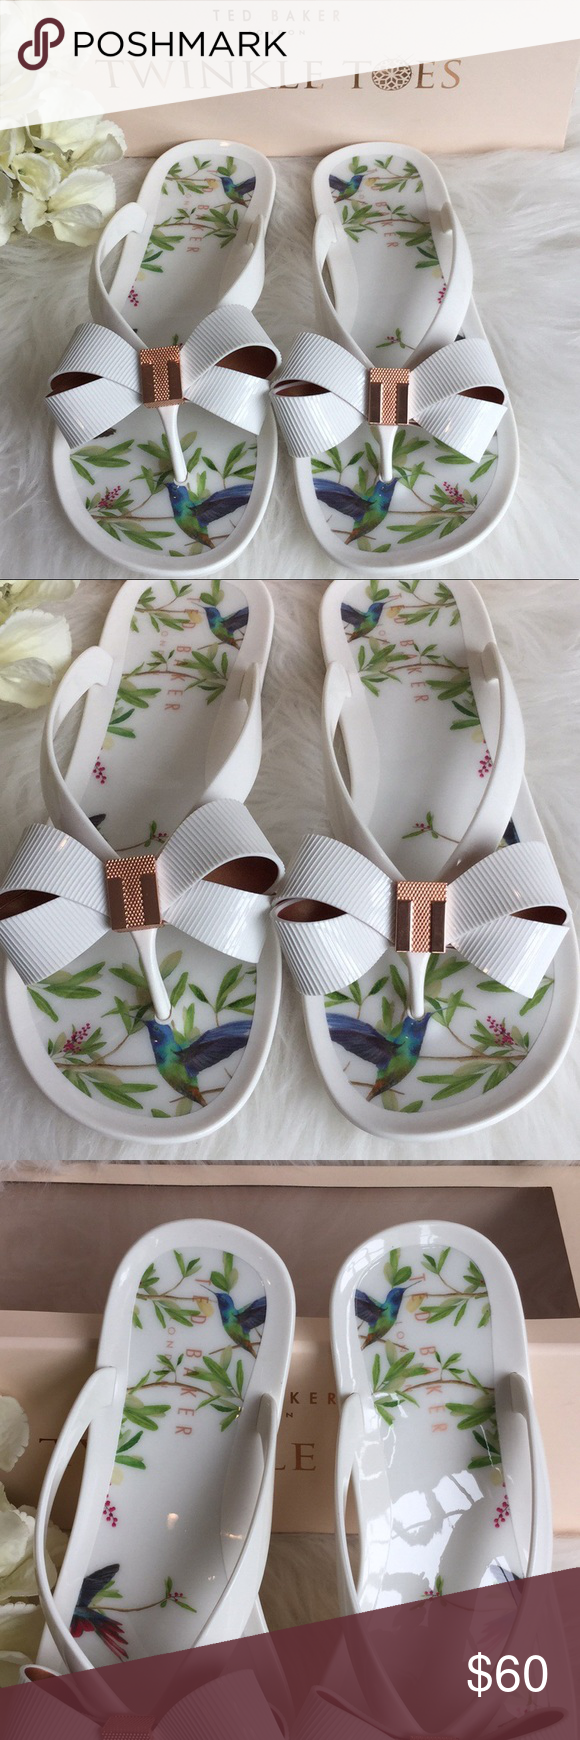 7913f779f 🆕Ted Baker Susziep Hummingbird Jelly Sandals NWT Adorable rubber flip flops  from Ted Baker London with cute floral and hummingbird design. New with box.